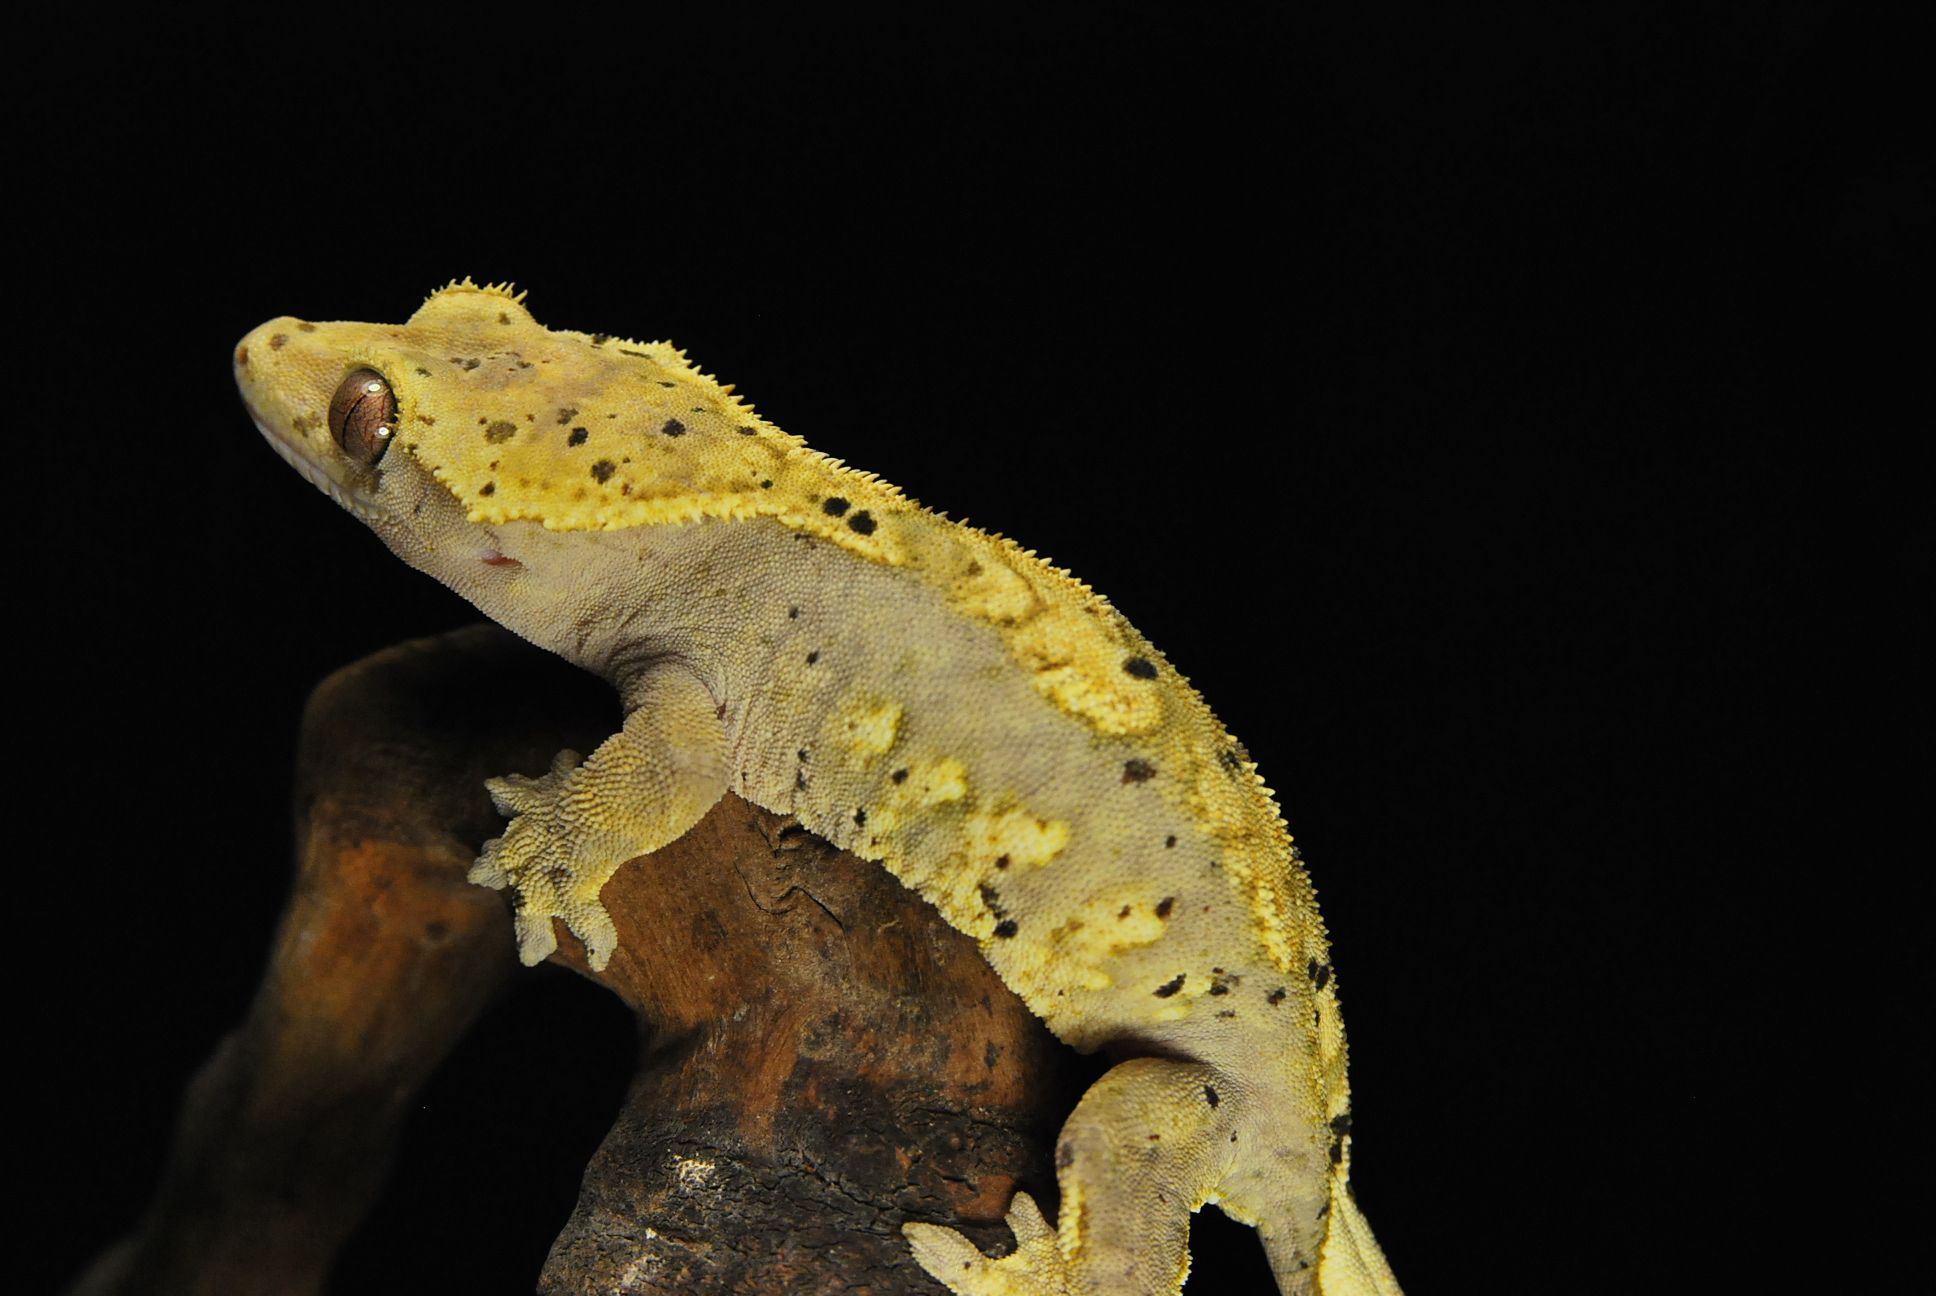 Dalmation Gecko Crested Gecko Harlequin Dalmation Crested Gecko